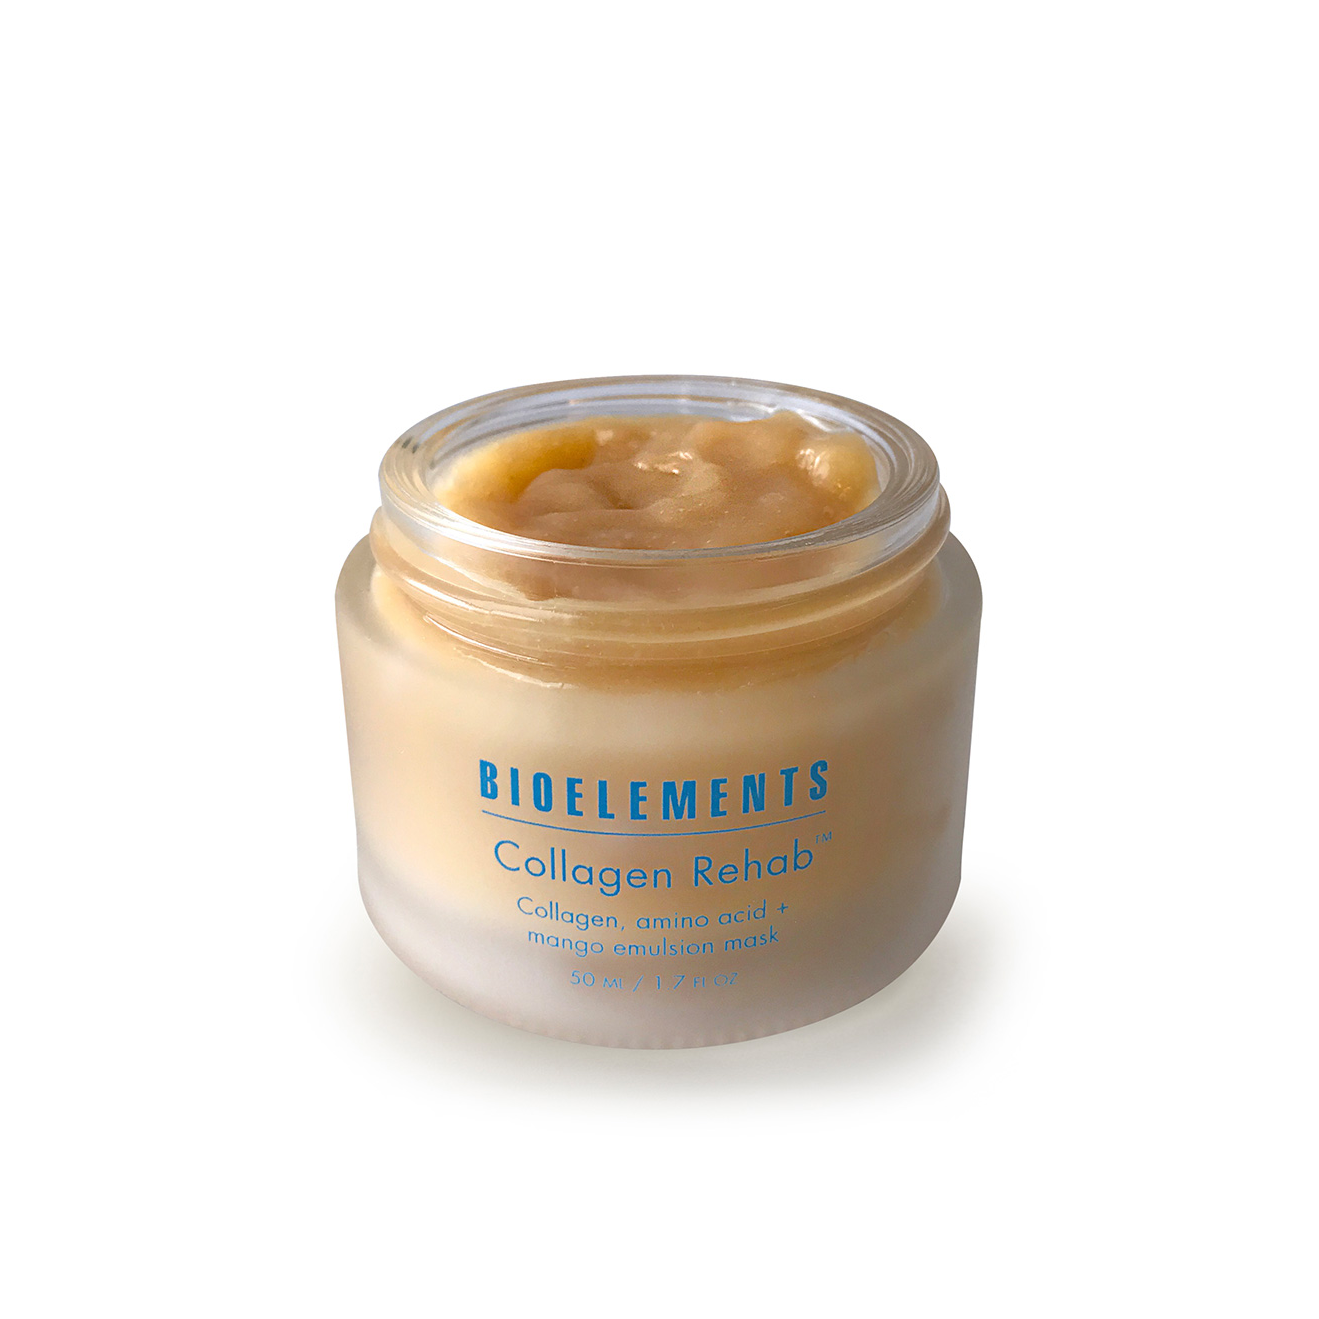 Bioelements Collagen Rehab Face and Lip Mask